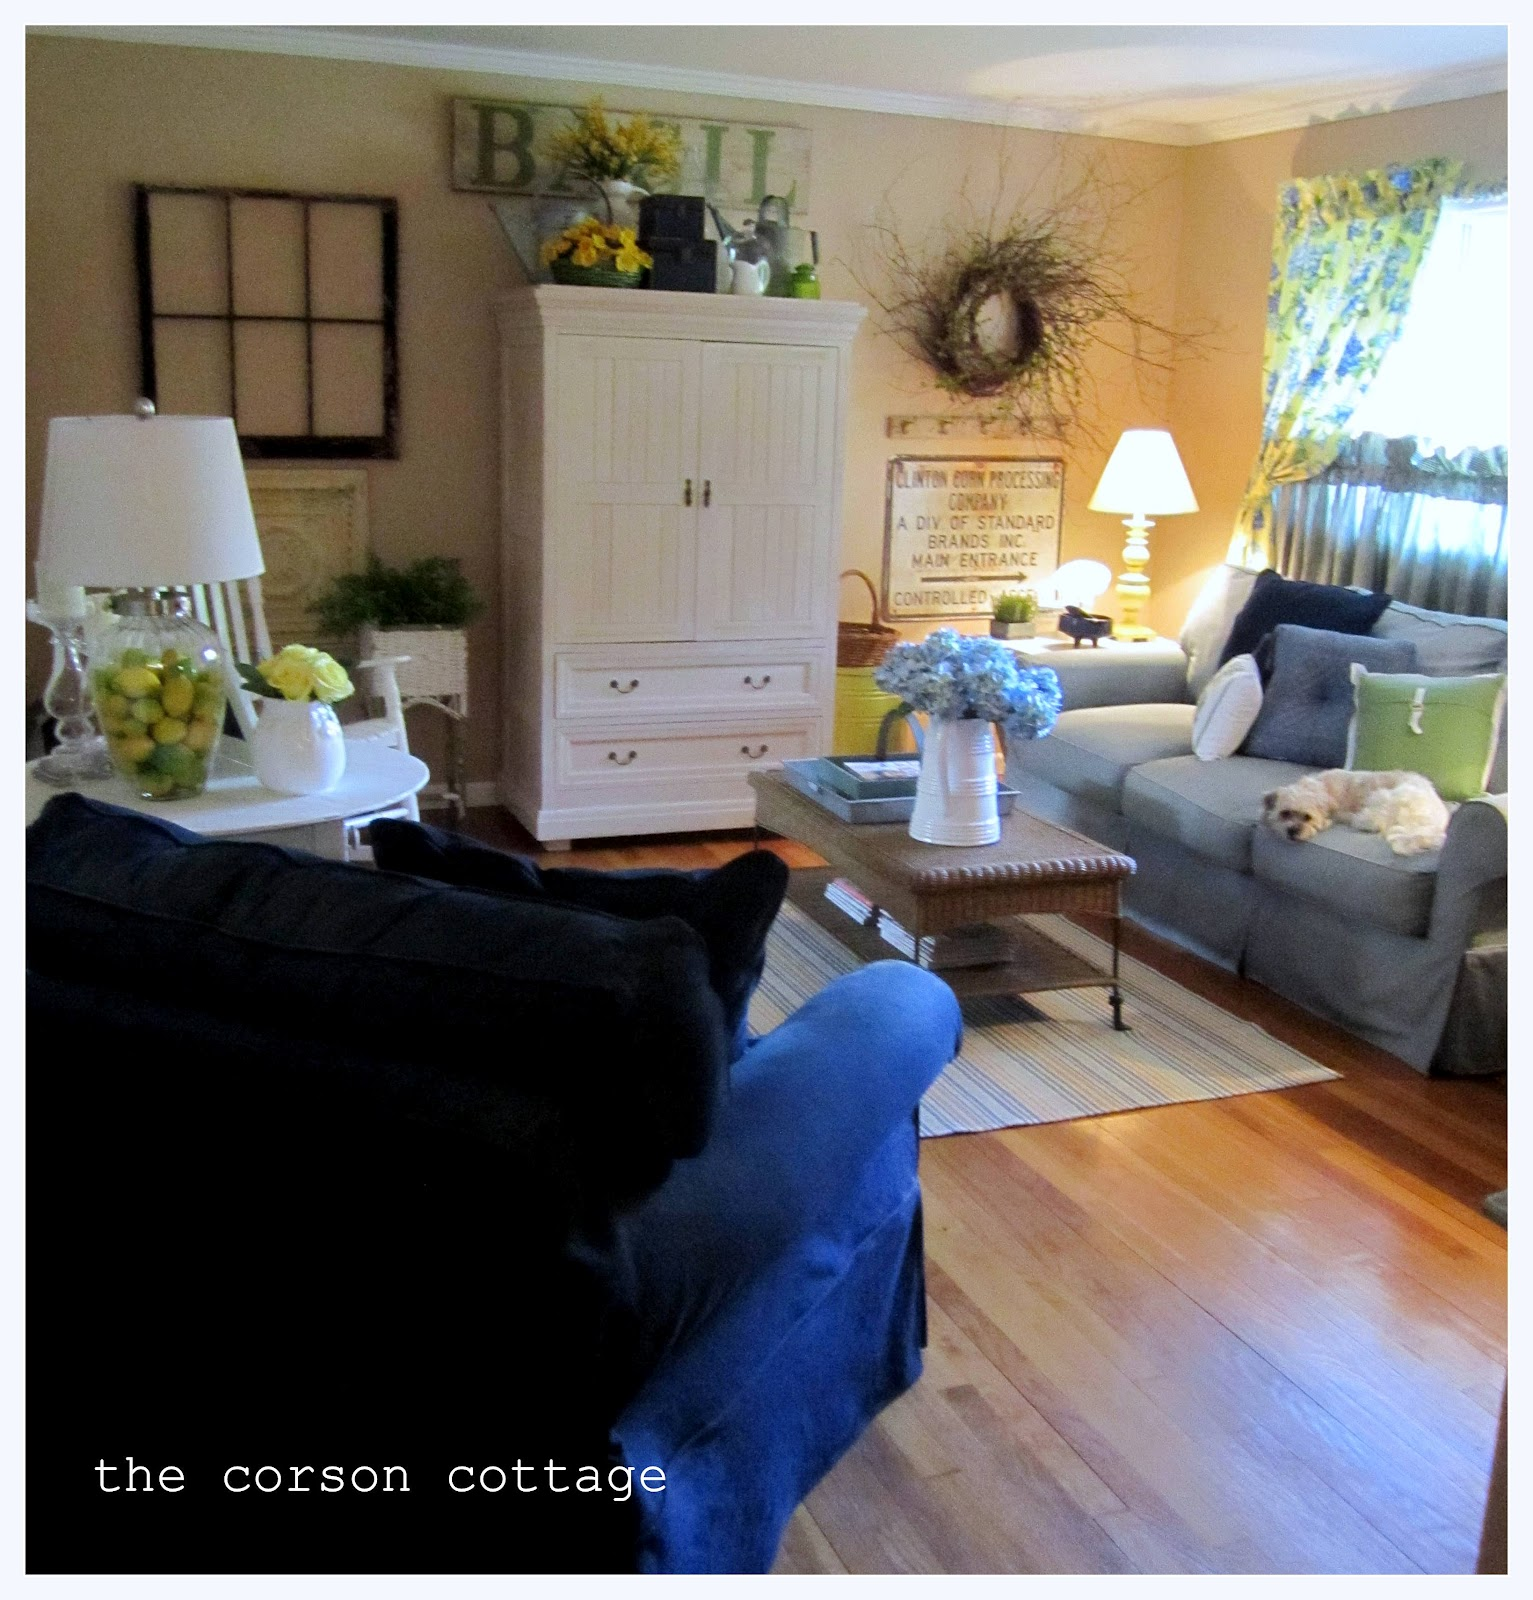 The Corson Cottage: Featured